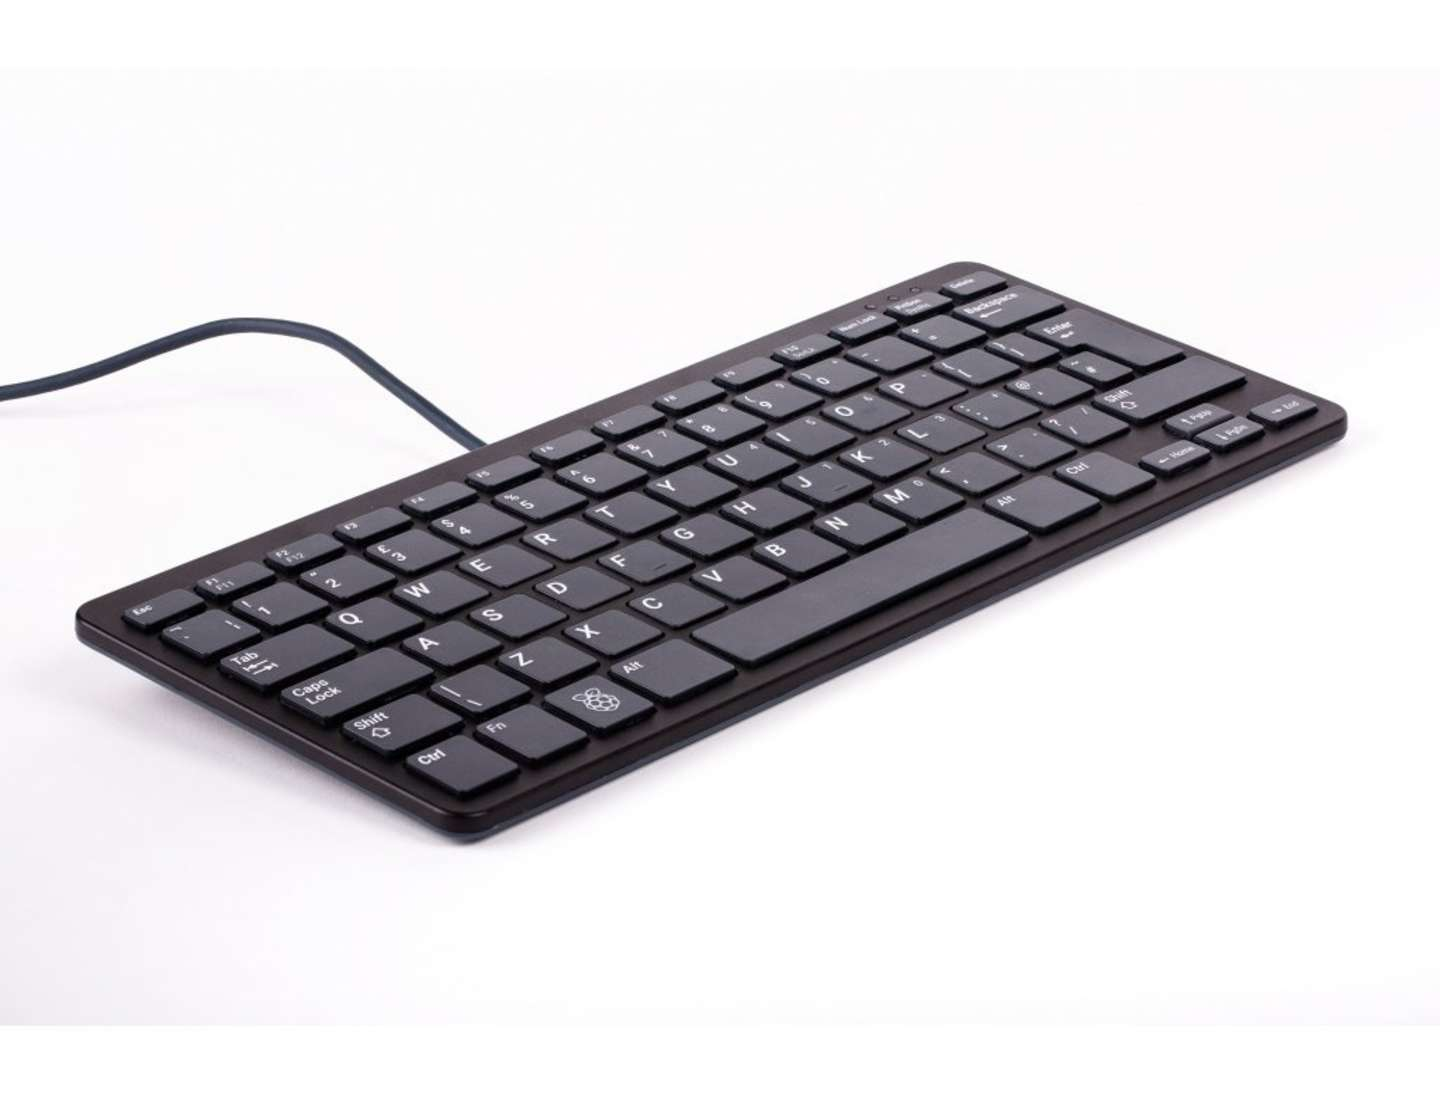 Black Raspberry Pi keyboard